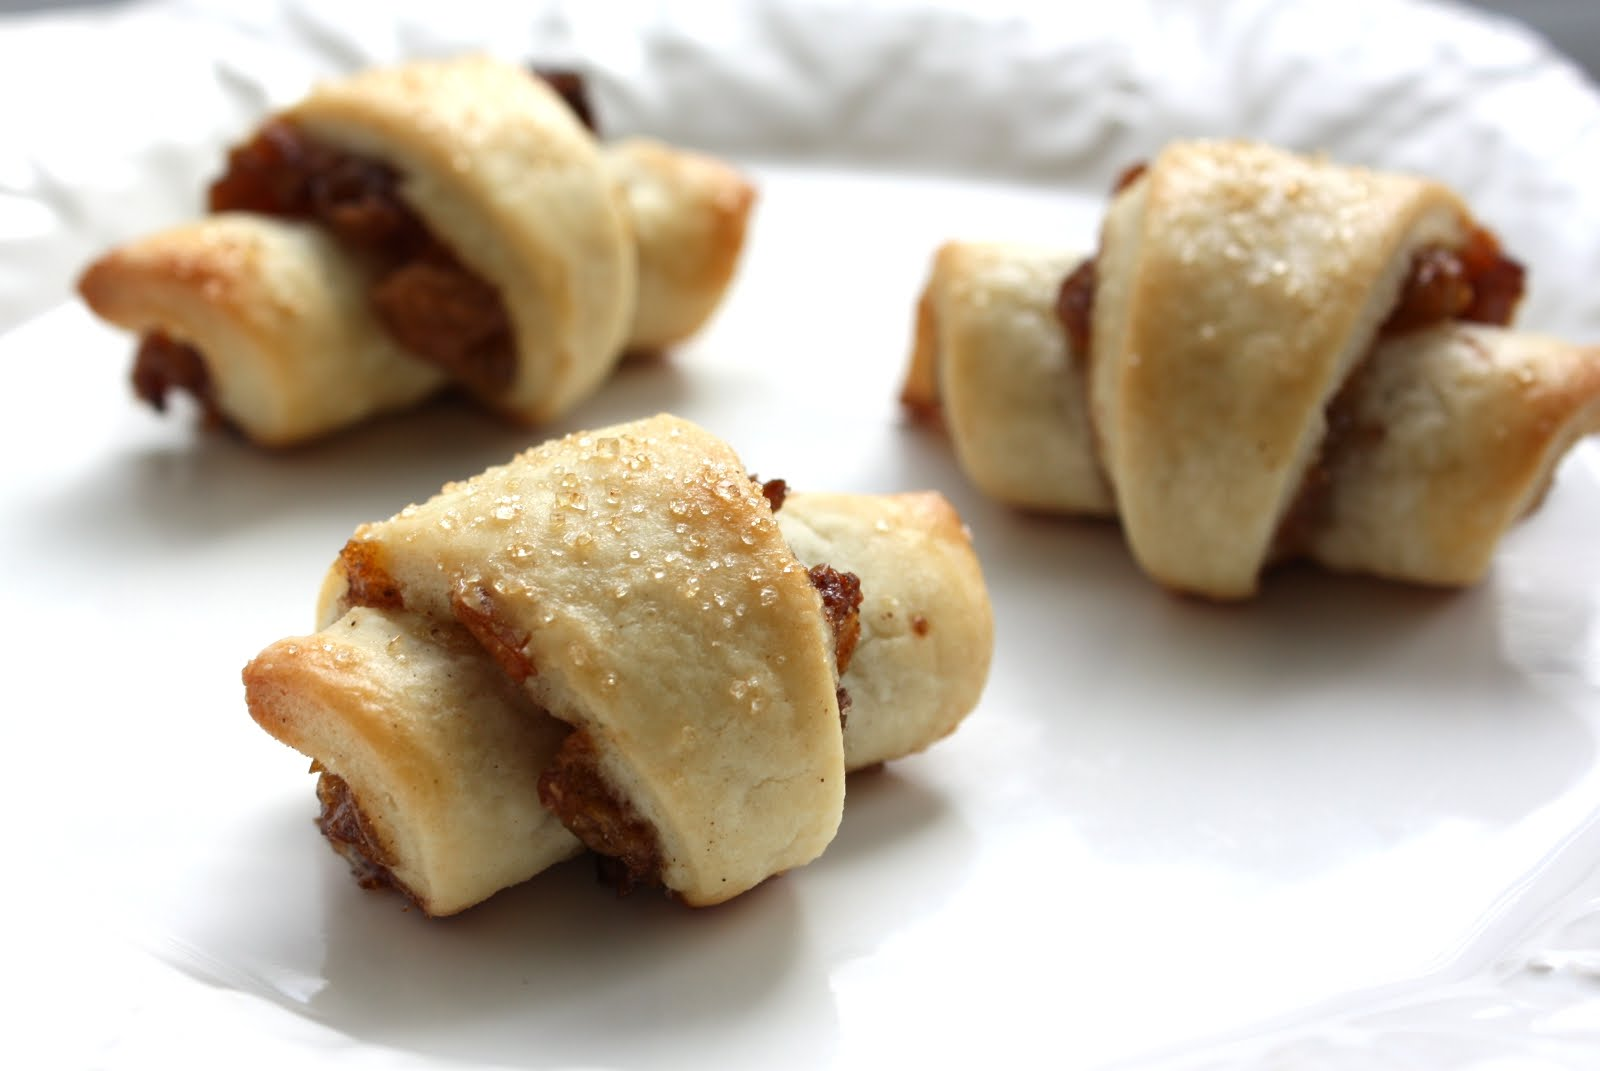 ... crescent dough things... And to add one more to the list - rugelach